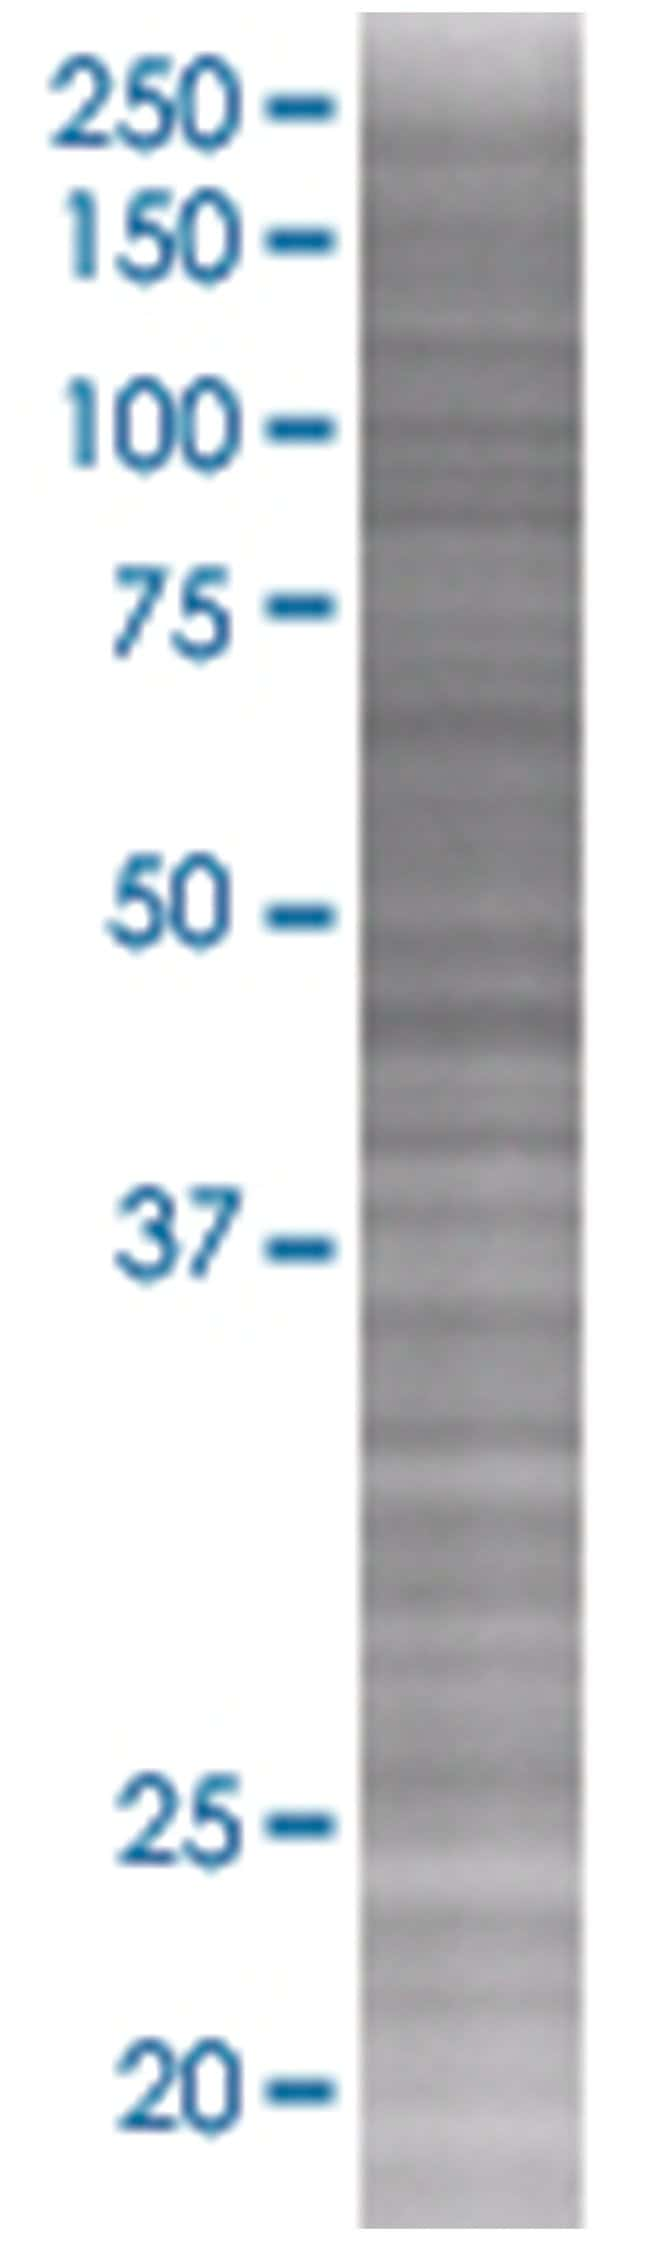 HLA-DPB1 293T Cell Overexpression Lysate (Denatured), Abnova 100µL:Life